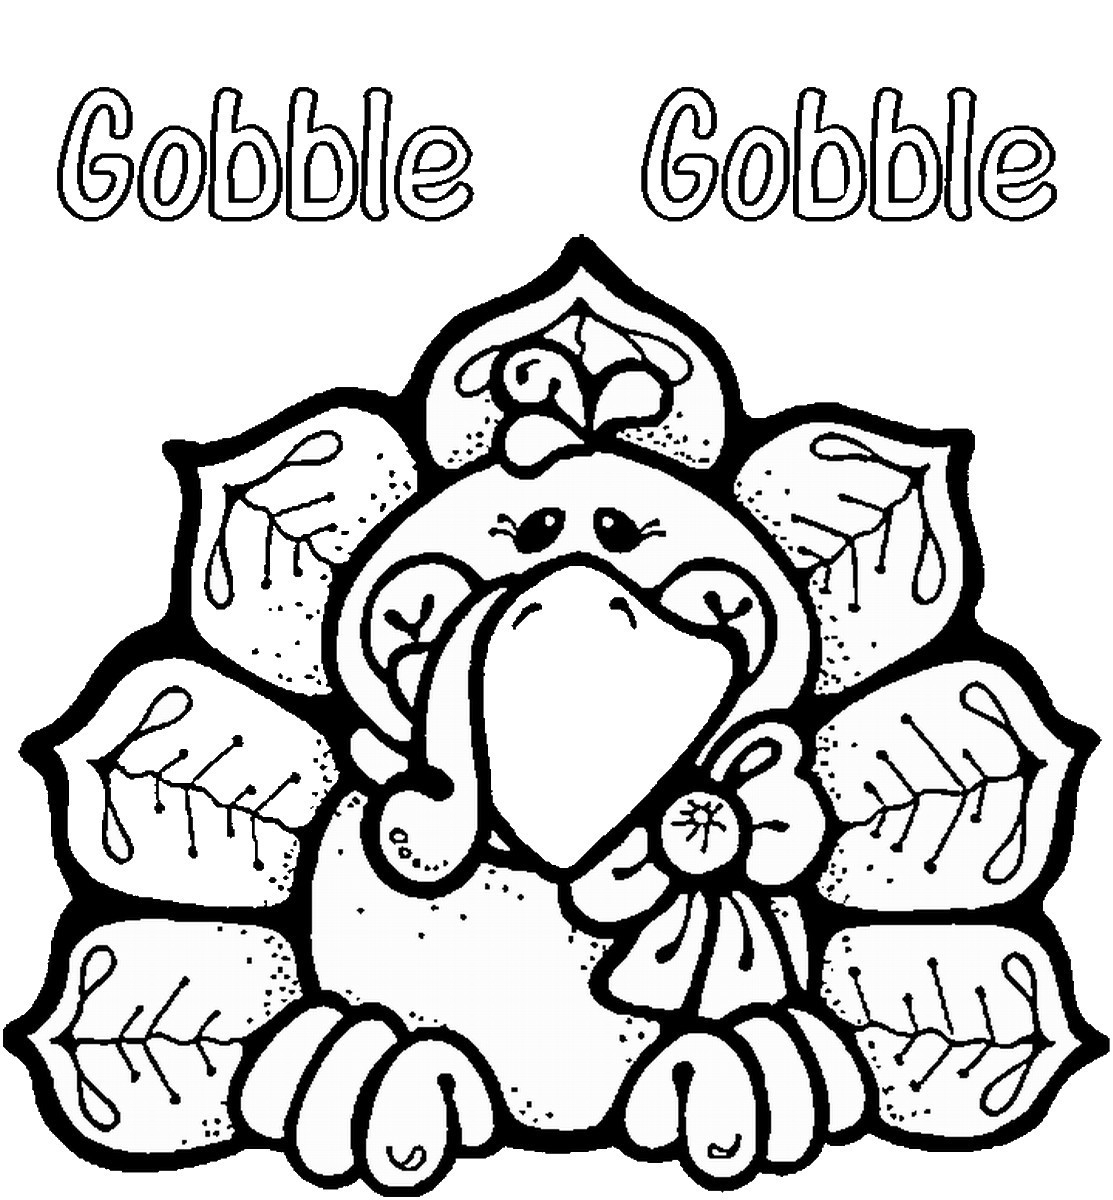 Thanksgiving Coloring Pages For Boys Thanksgiving Coloring Pages For Kids Jpg Printable Coloring Page